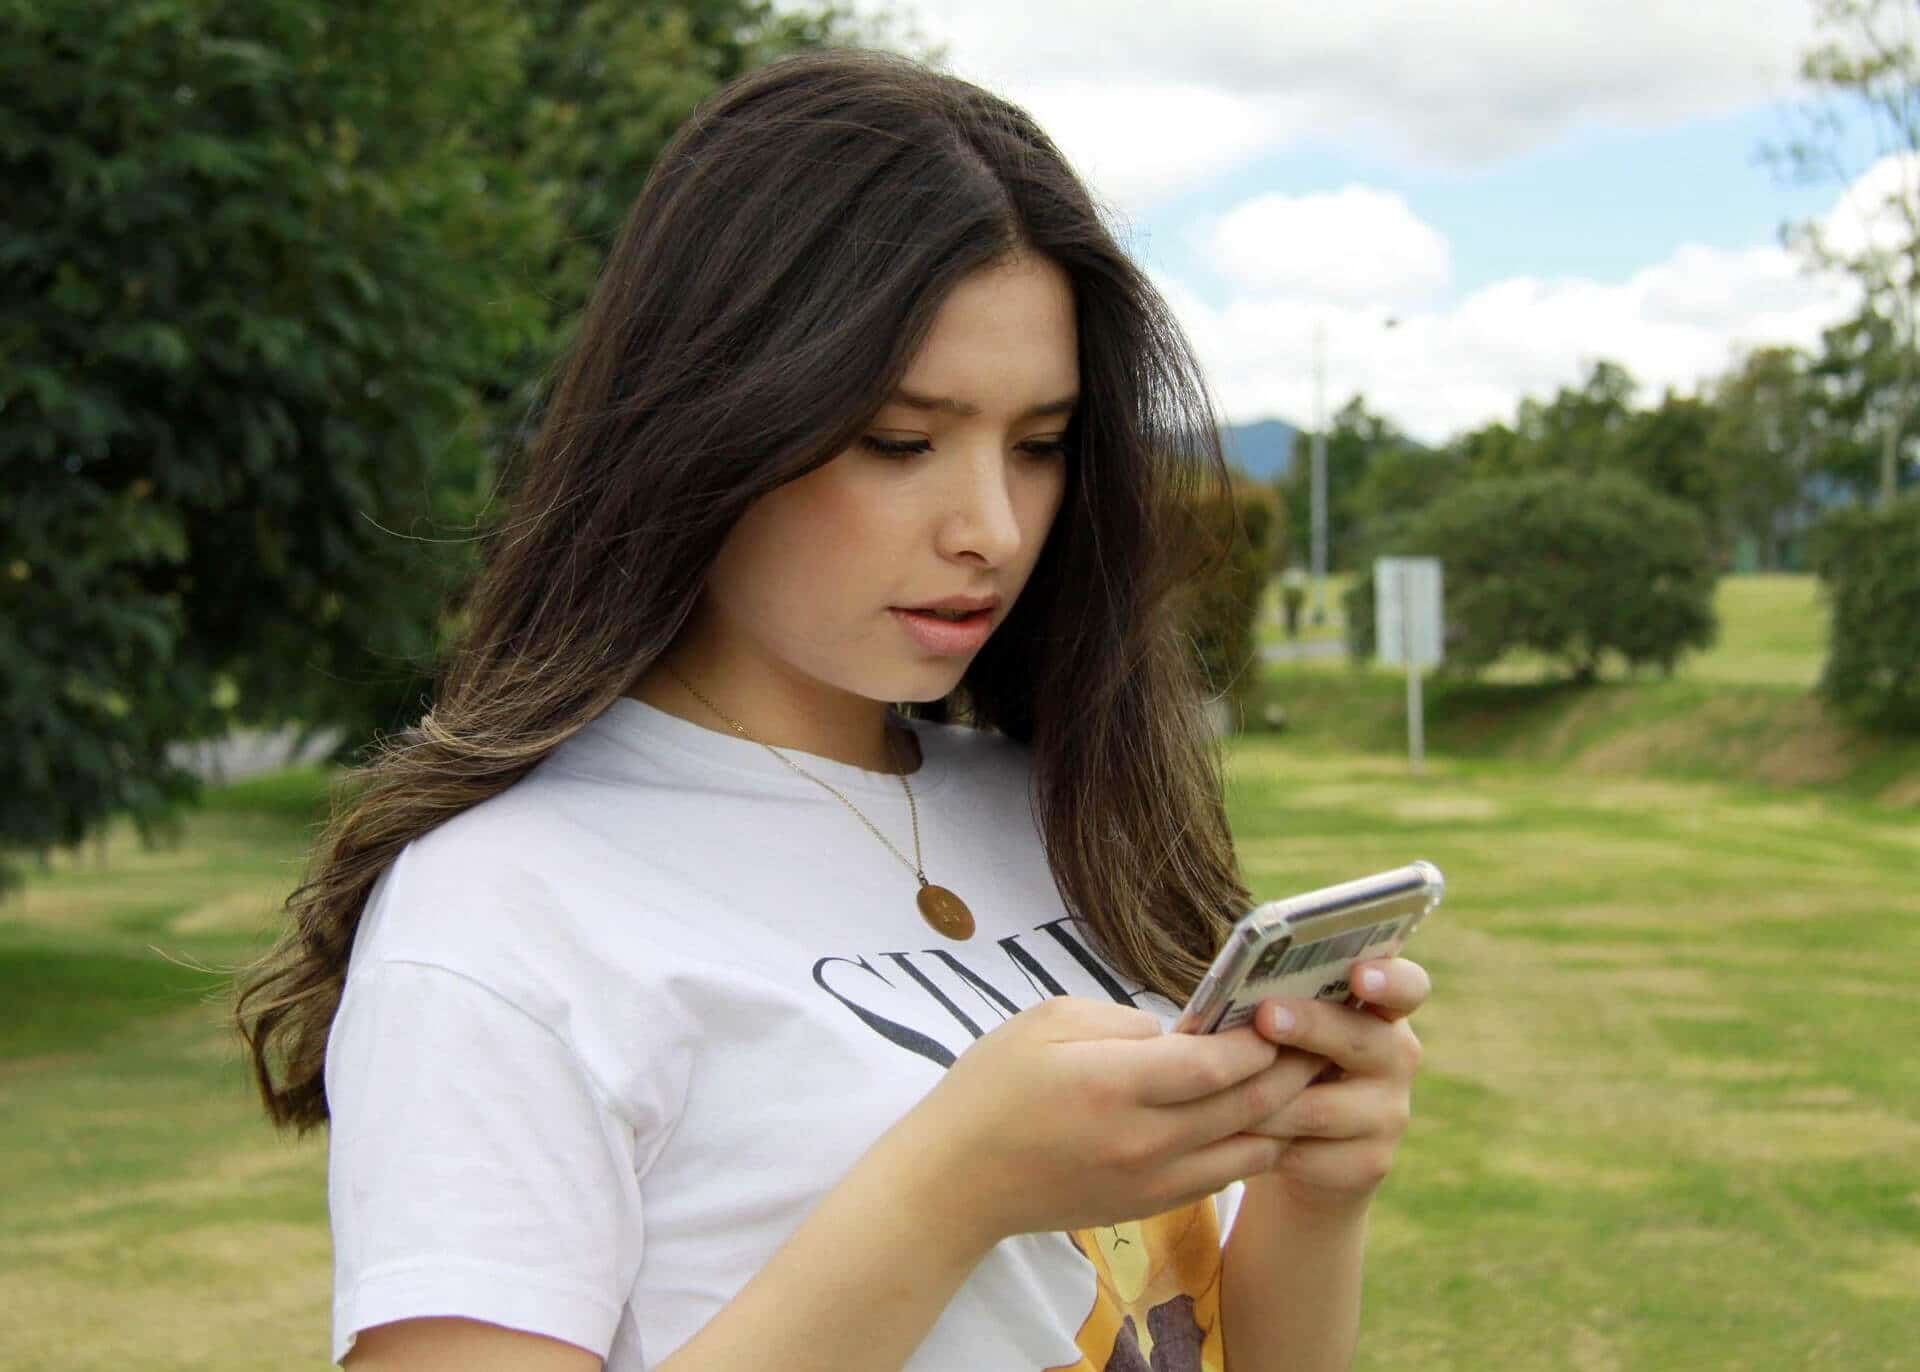 young woman sharing her stories via text